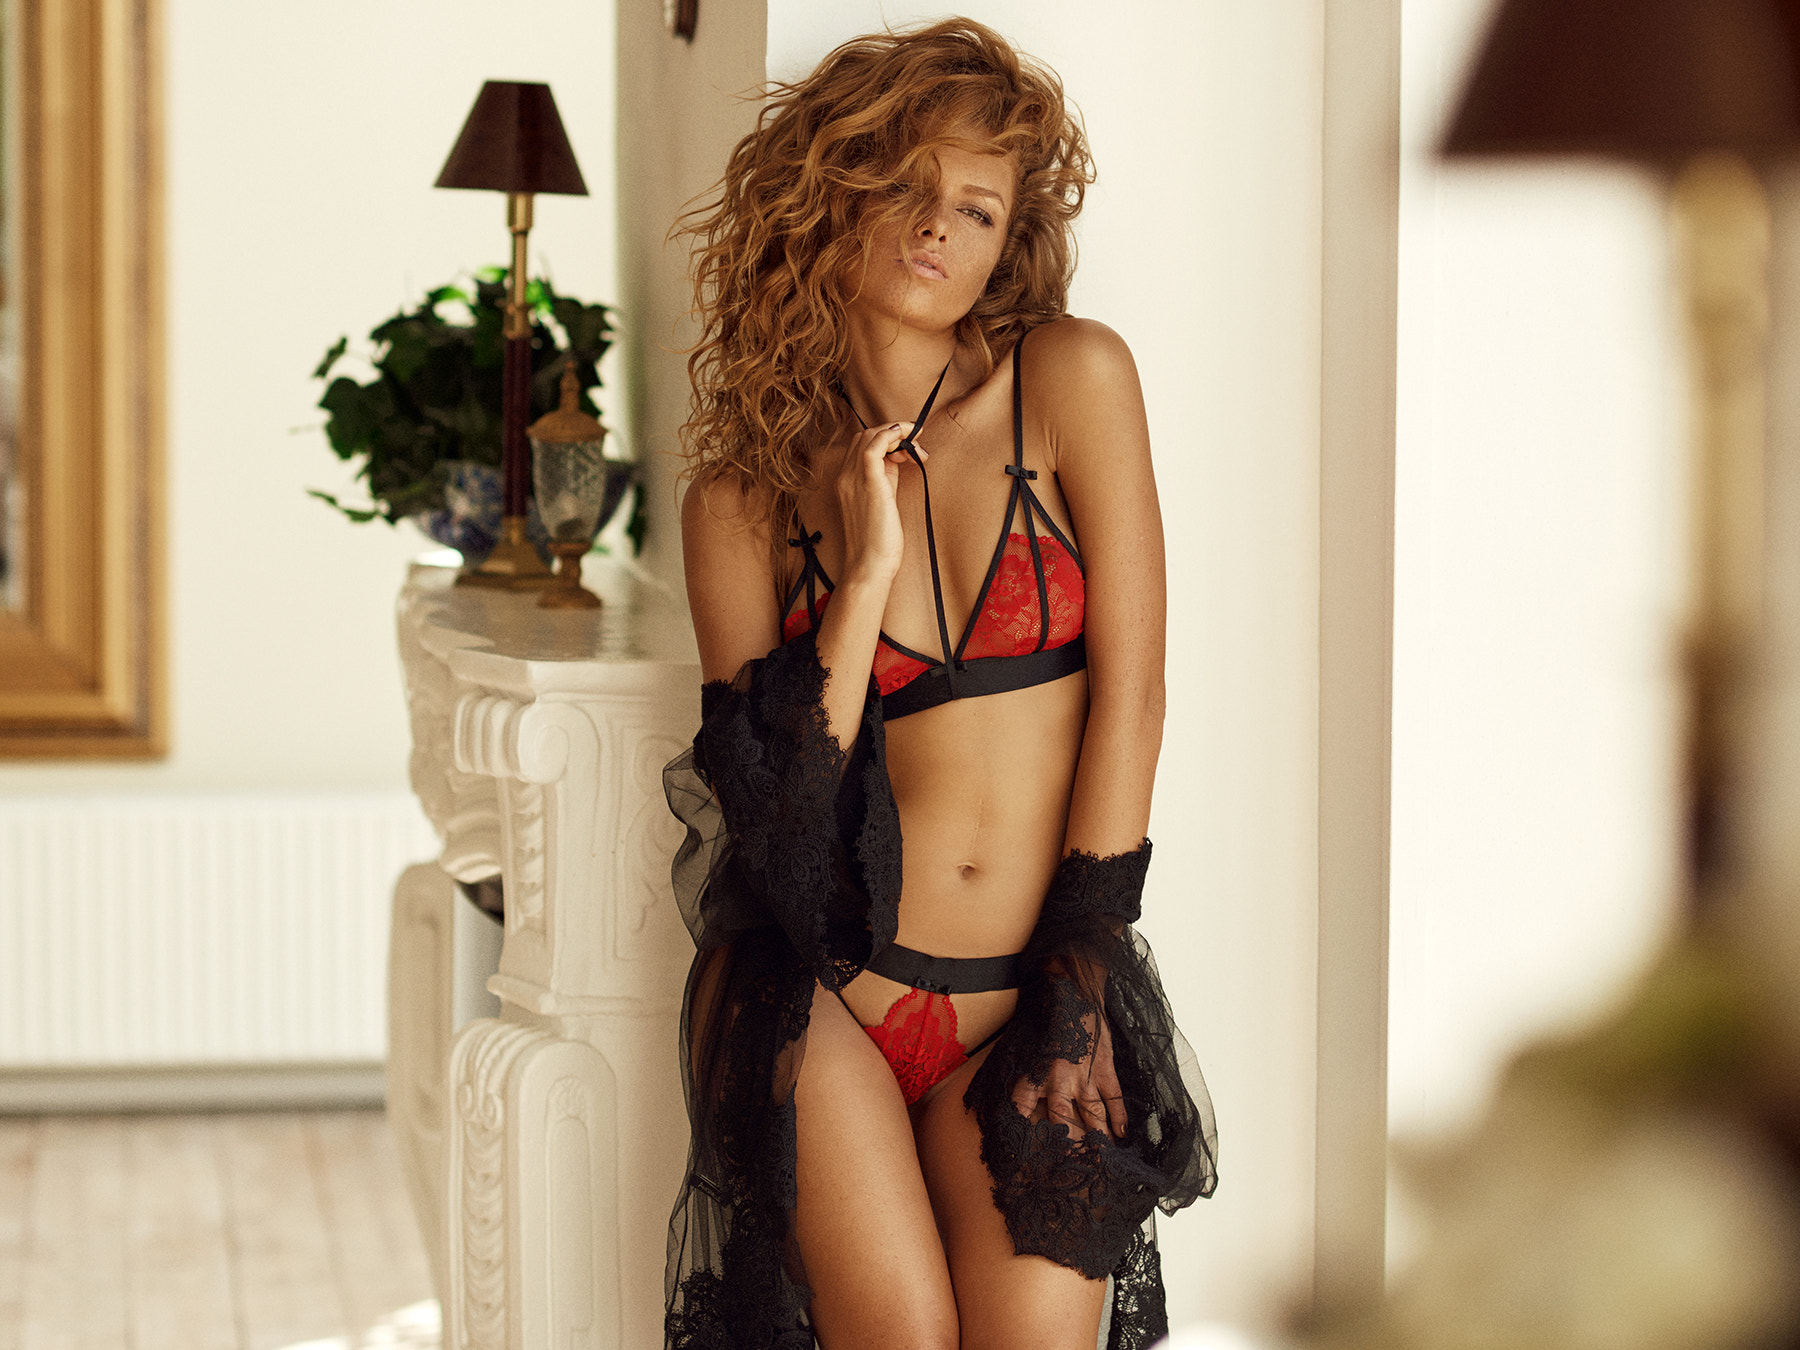 People 1800x1350 women redhead wavy hair lingerie red panties red bra face freckles tanned lace hair in face portrait depth of field see-through clothing Julia Yaroshenko Joakim Karlsson